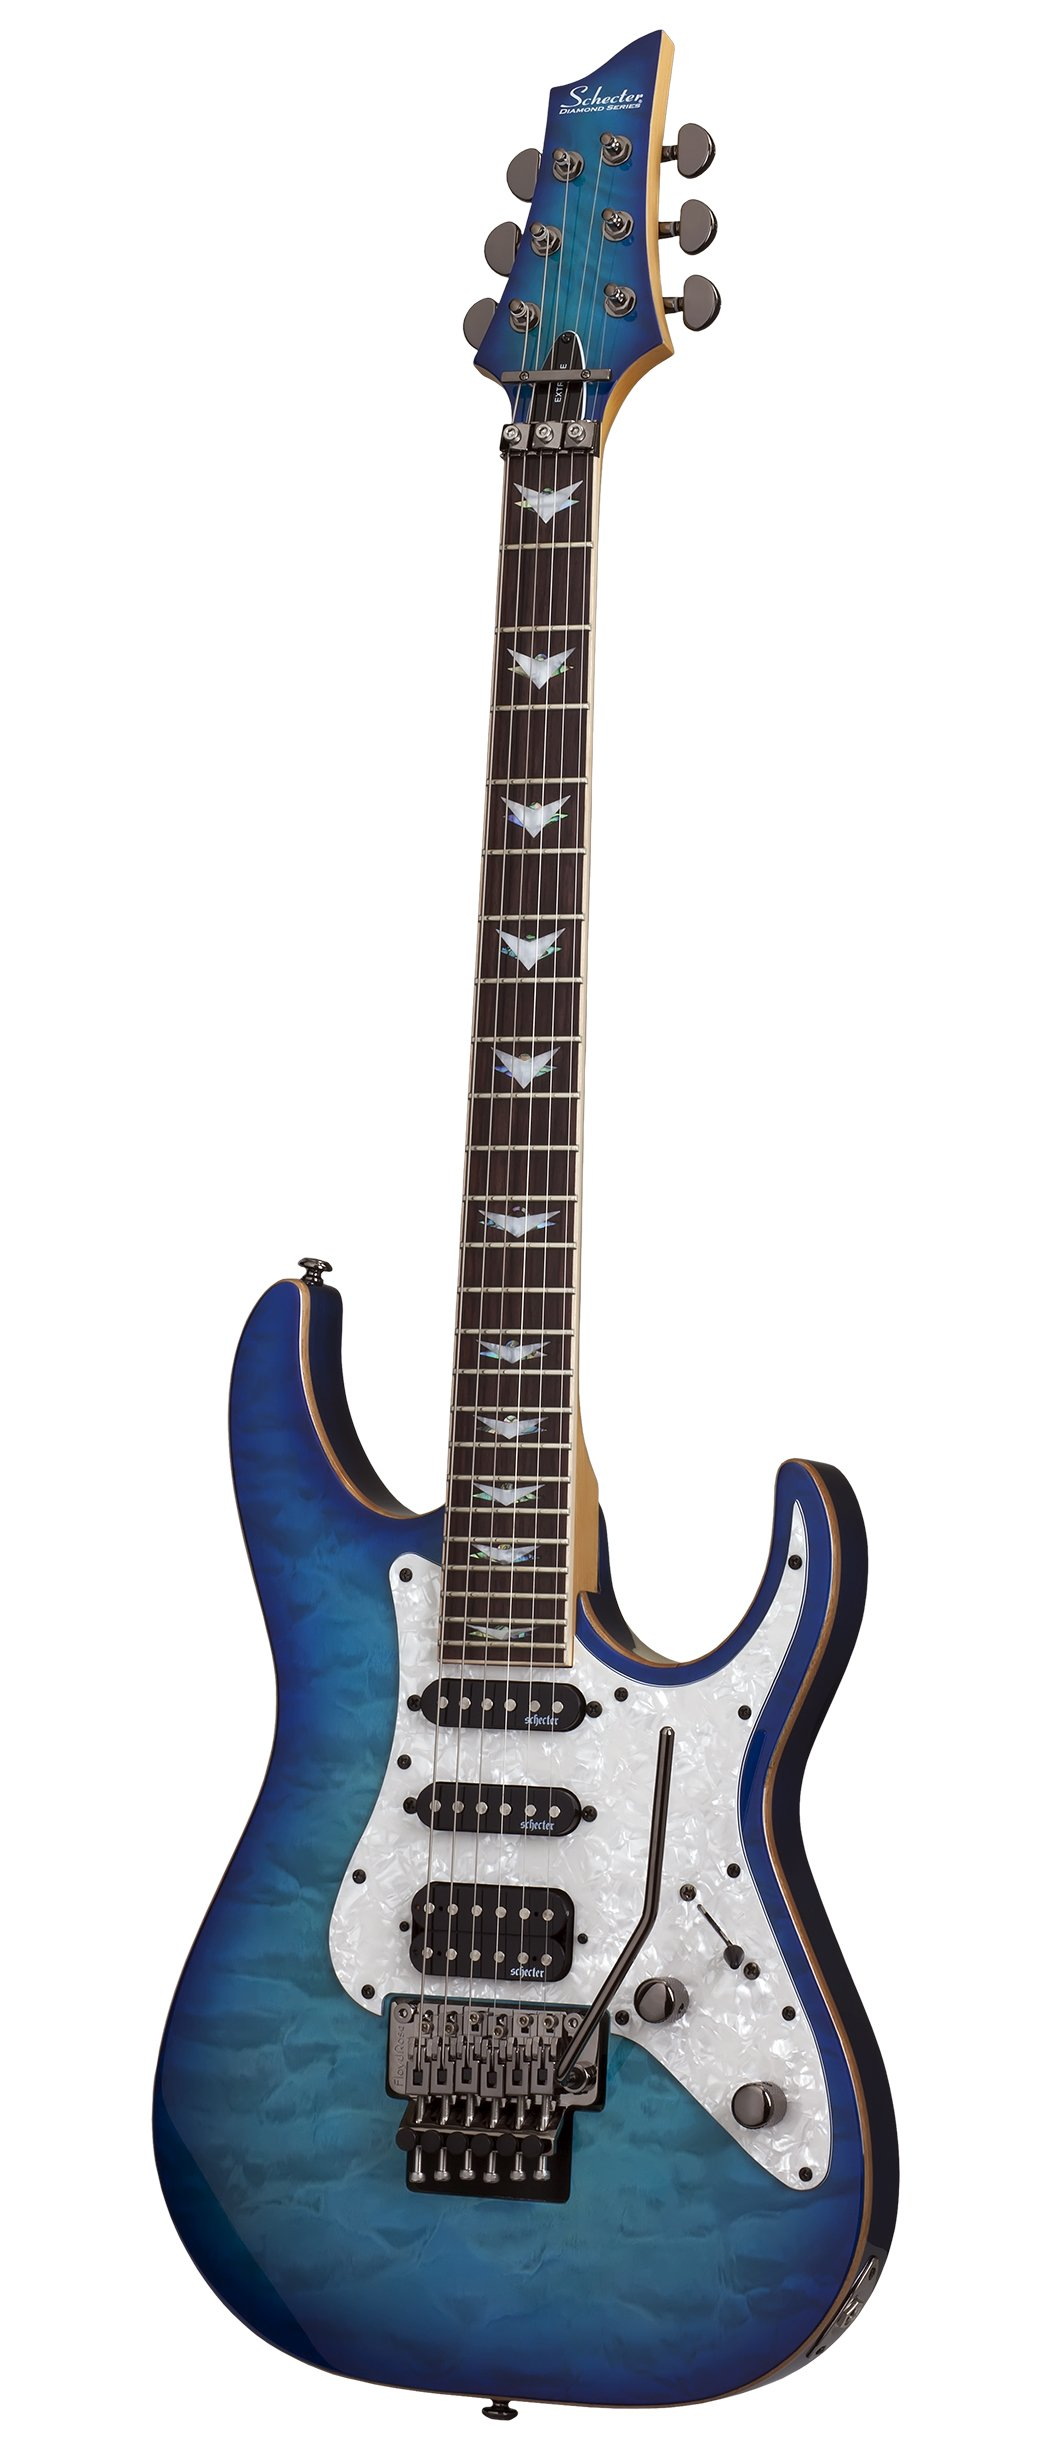 schecter 6 string solid body electric guitar ocean blue burst 1994 guitar affinity. Black Bedroom Furniture Sets. Home Design Ideas